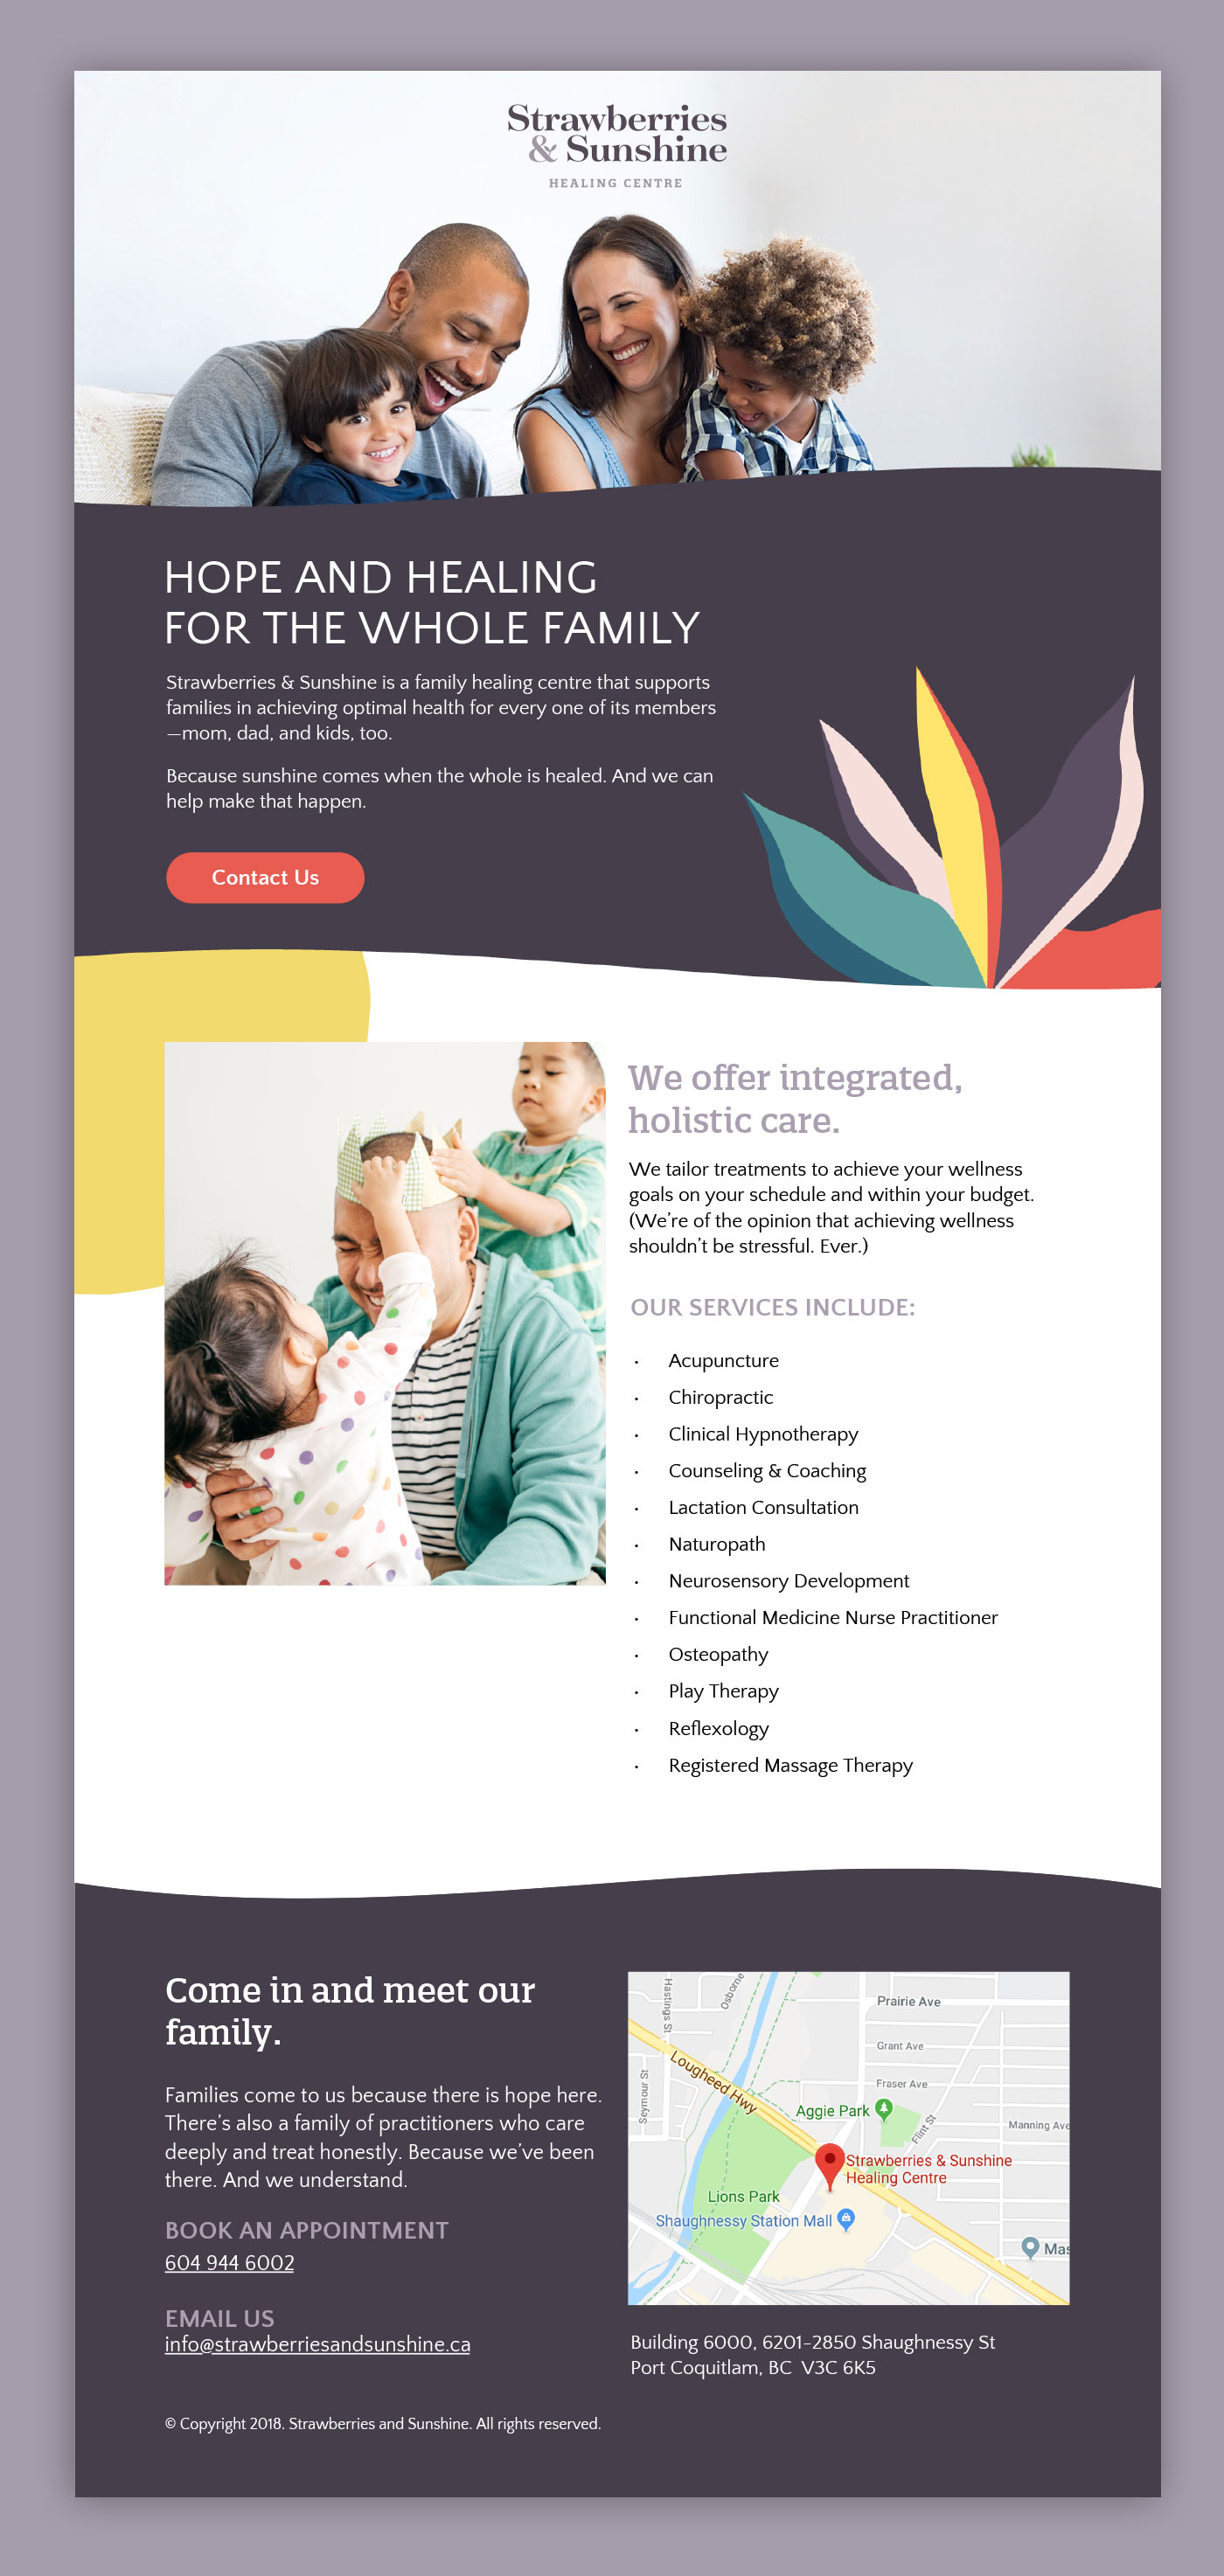 Brand strategy and design for Vancouver-based family clinic, Strawberries & Sunshine, by Flipside Creative.